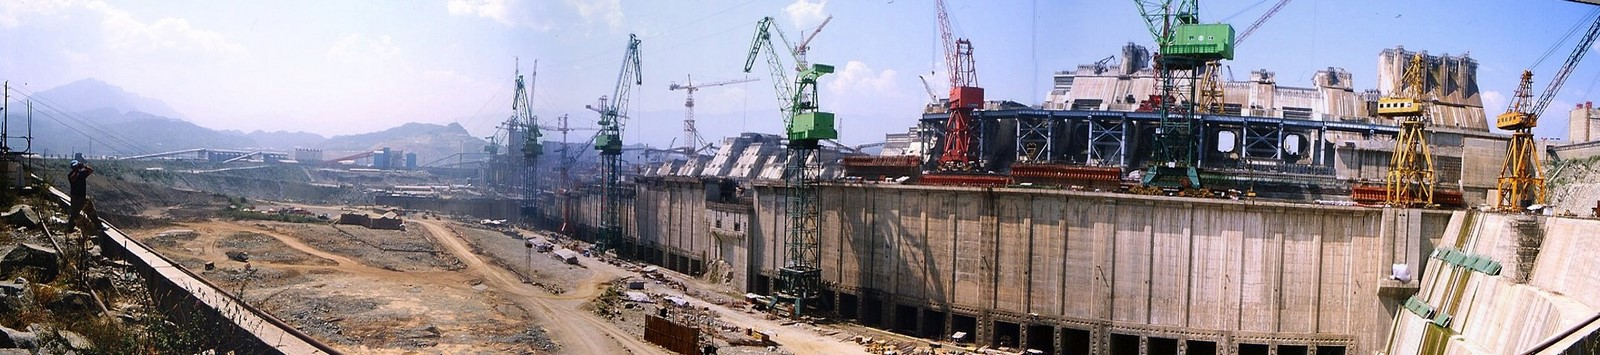 Three Gorges Dam by Pan Jiazheng- The world's Largest hydroelectric dam - Sheet6